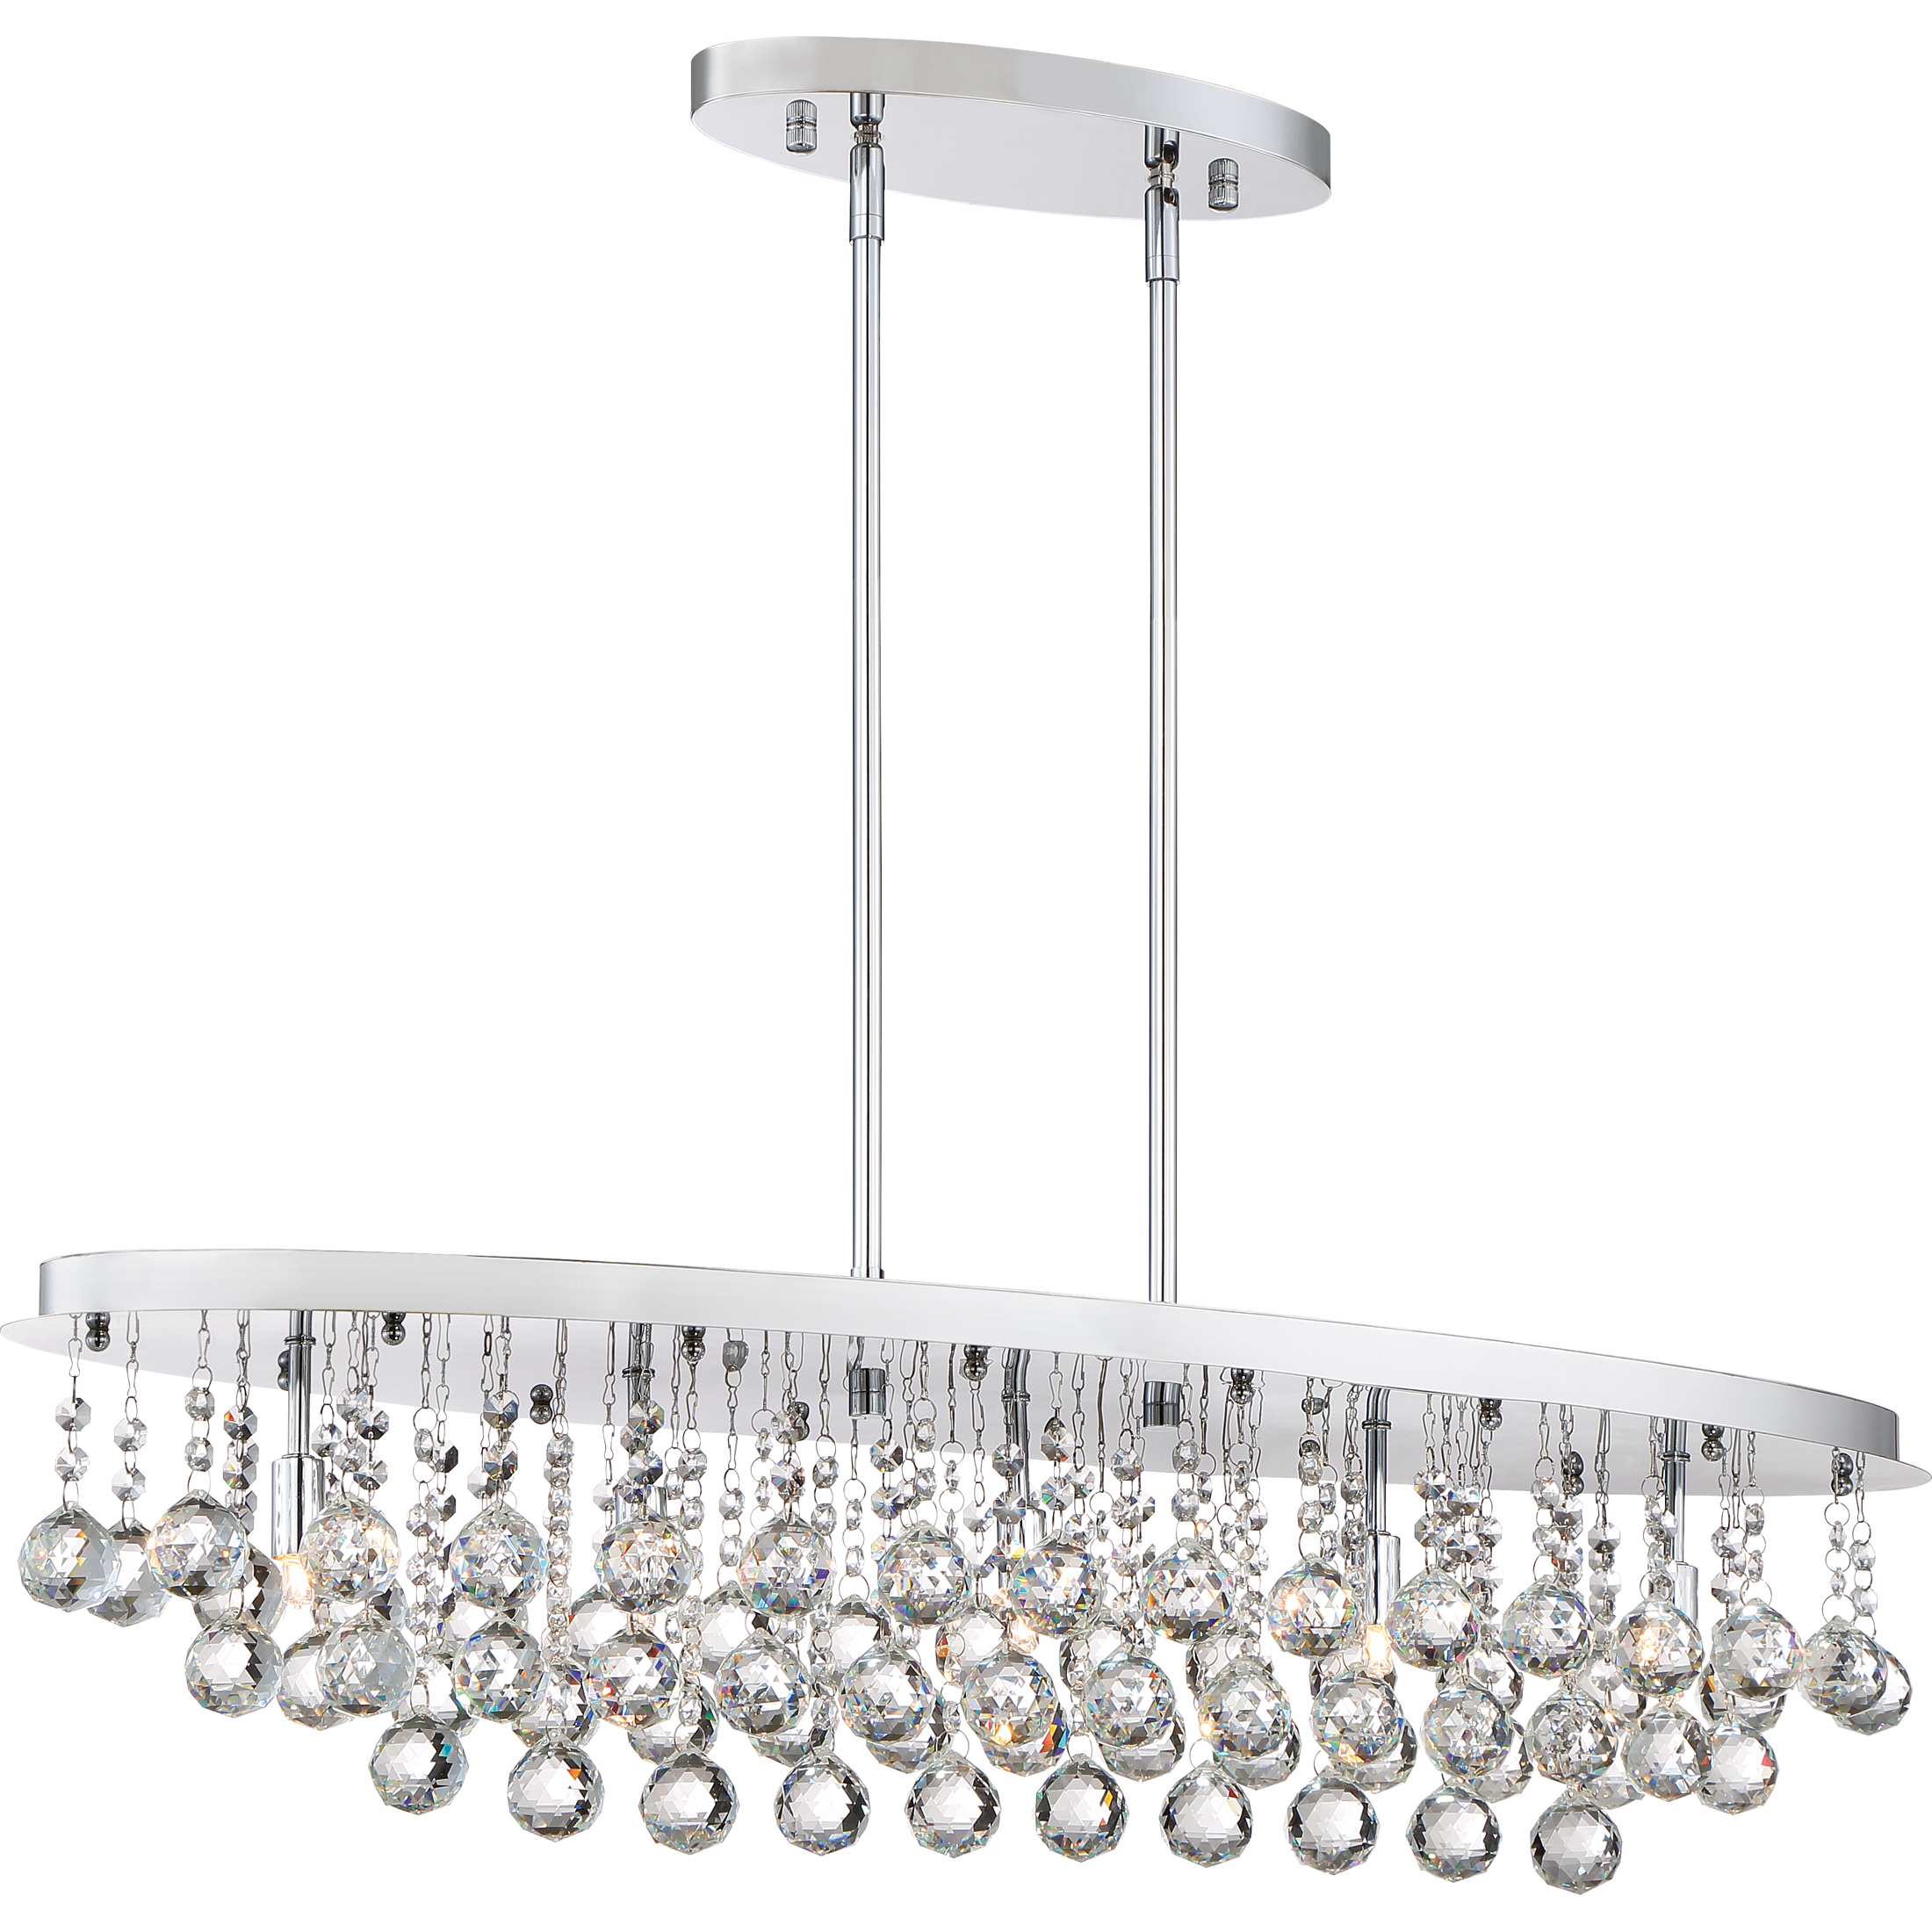 Quoizel Lighting Brx535c Bordeaux With Clear Crystal Island Chandelier